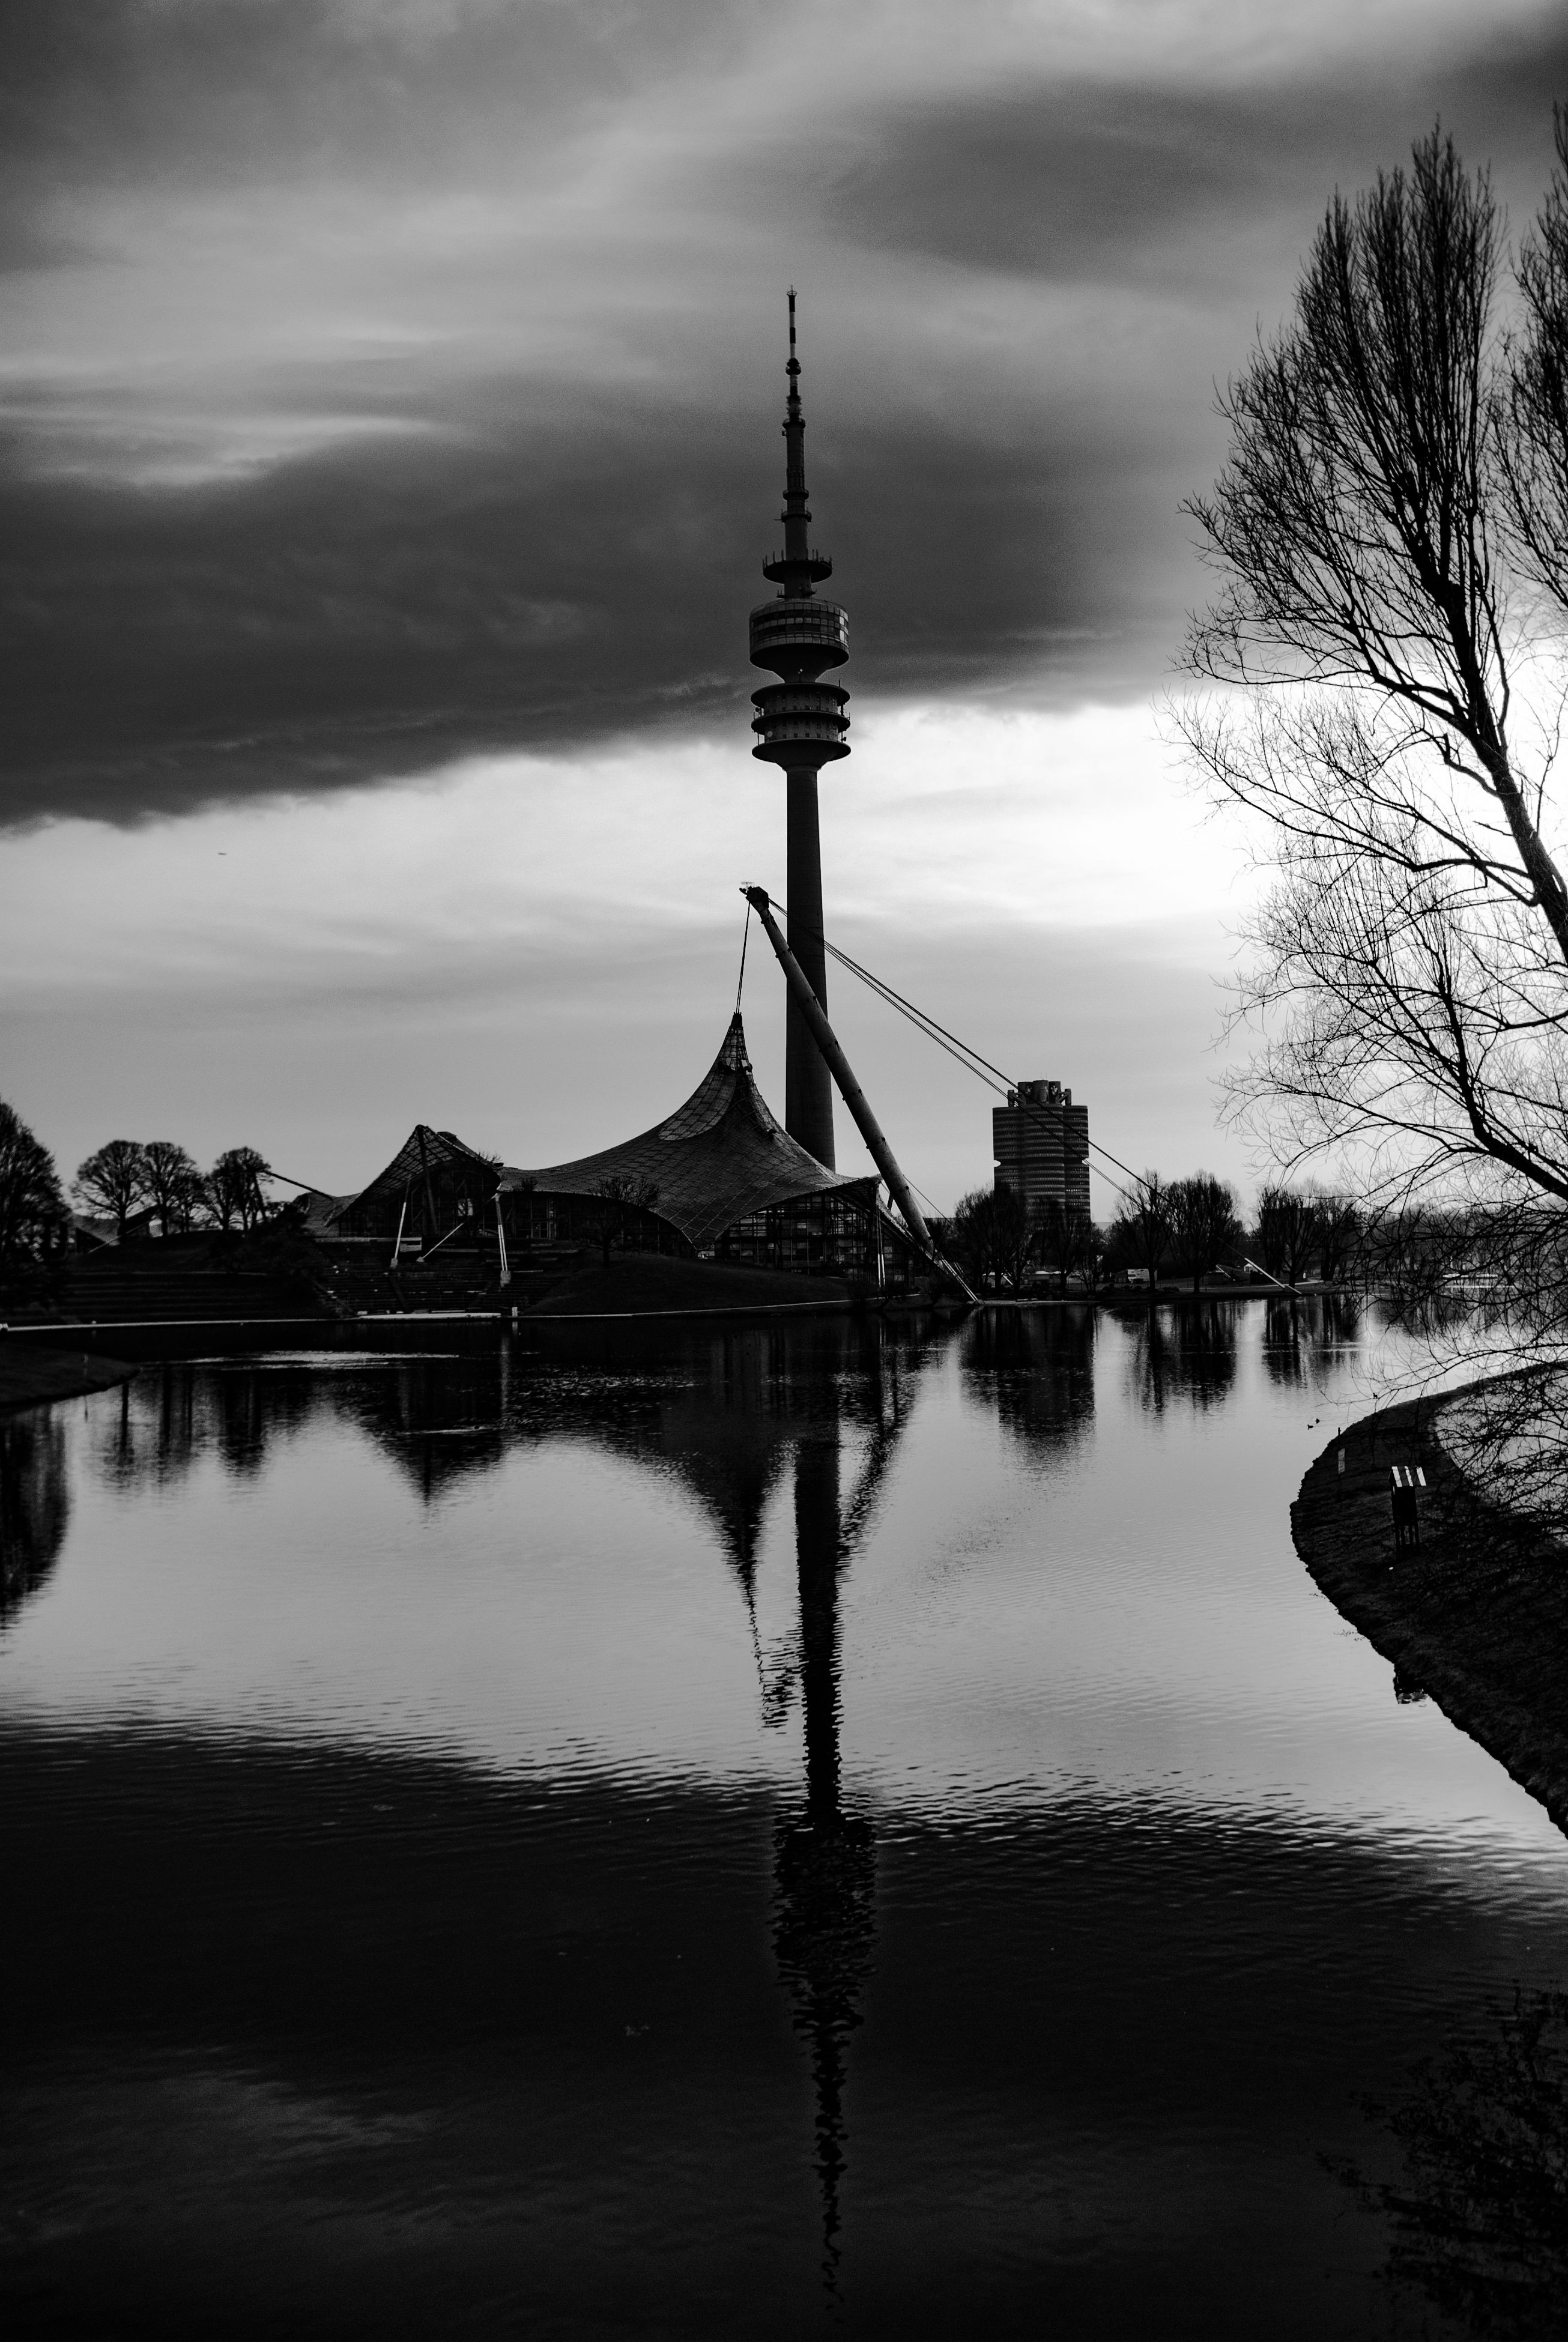 sky, reflection, architecture, water, built structure, travel destinations, building exterior, outdoors, waterfront, river, no people, cloud - sky, winter, nature, day, snow, tree, beauty in nature